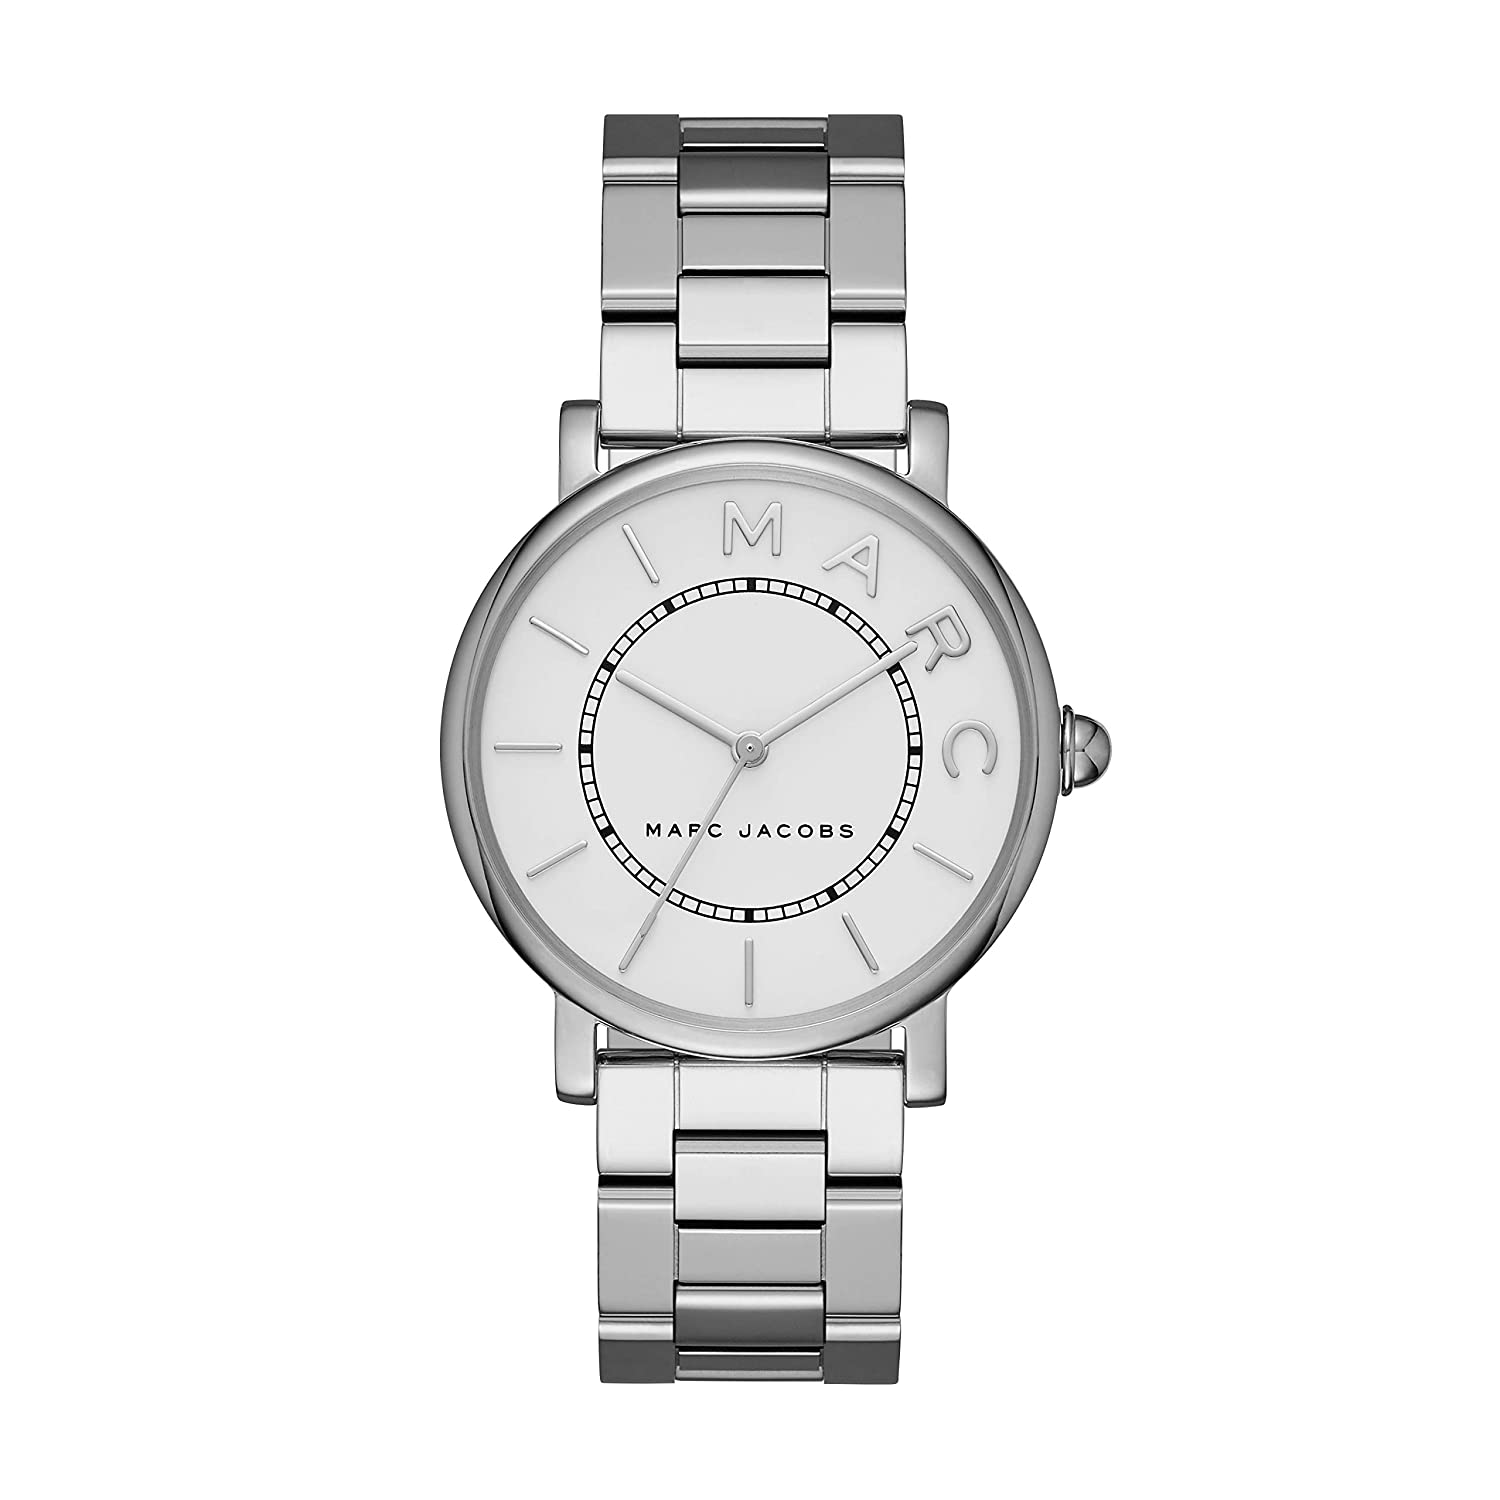 be706604d3f Marc Jacobs MJ3521 Ladies Classic Watch  Amazon.co.uk  Watches